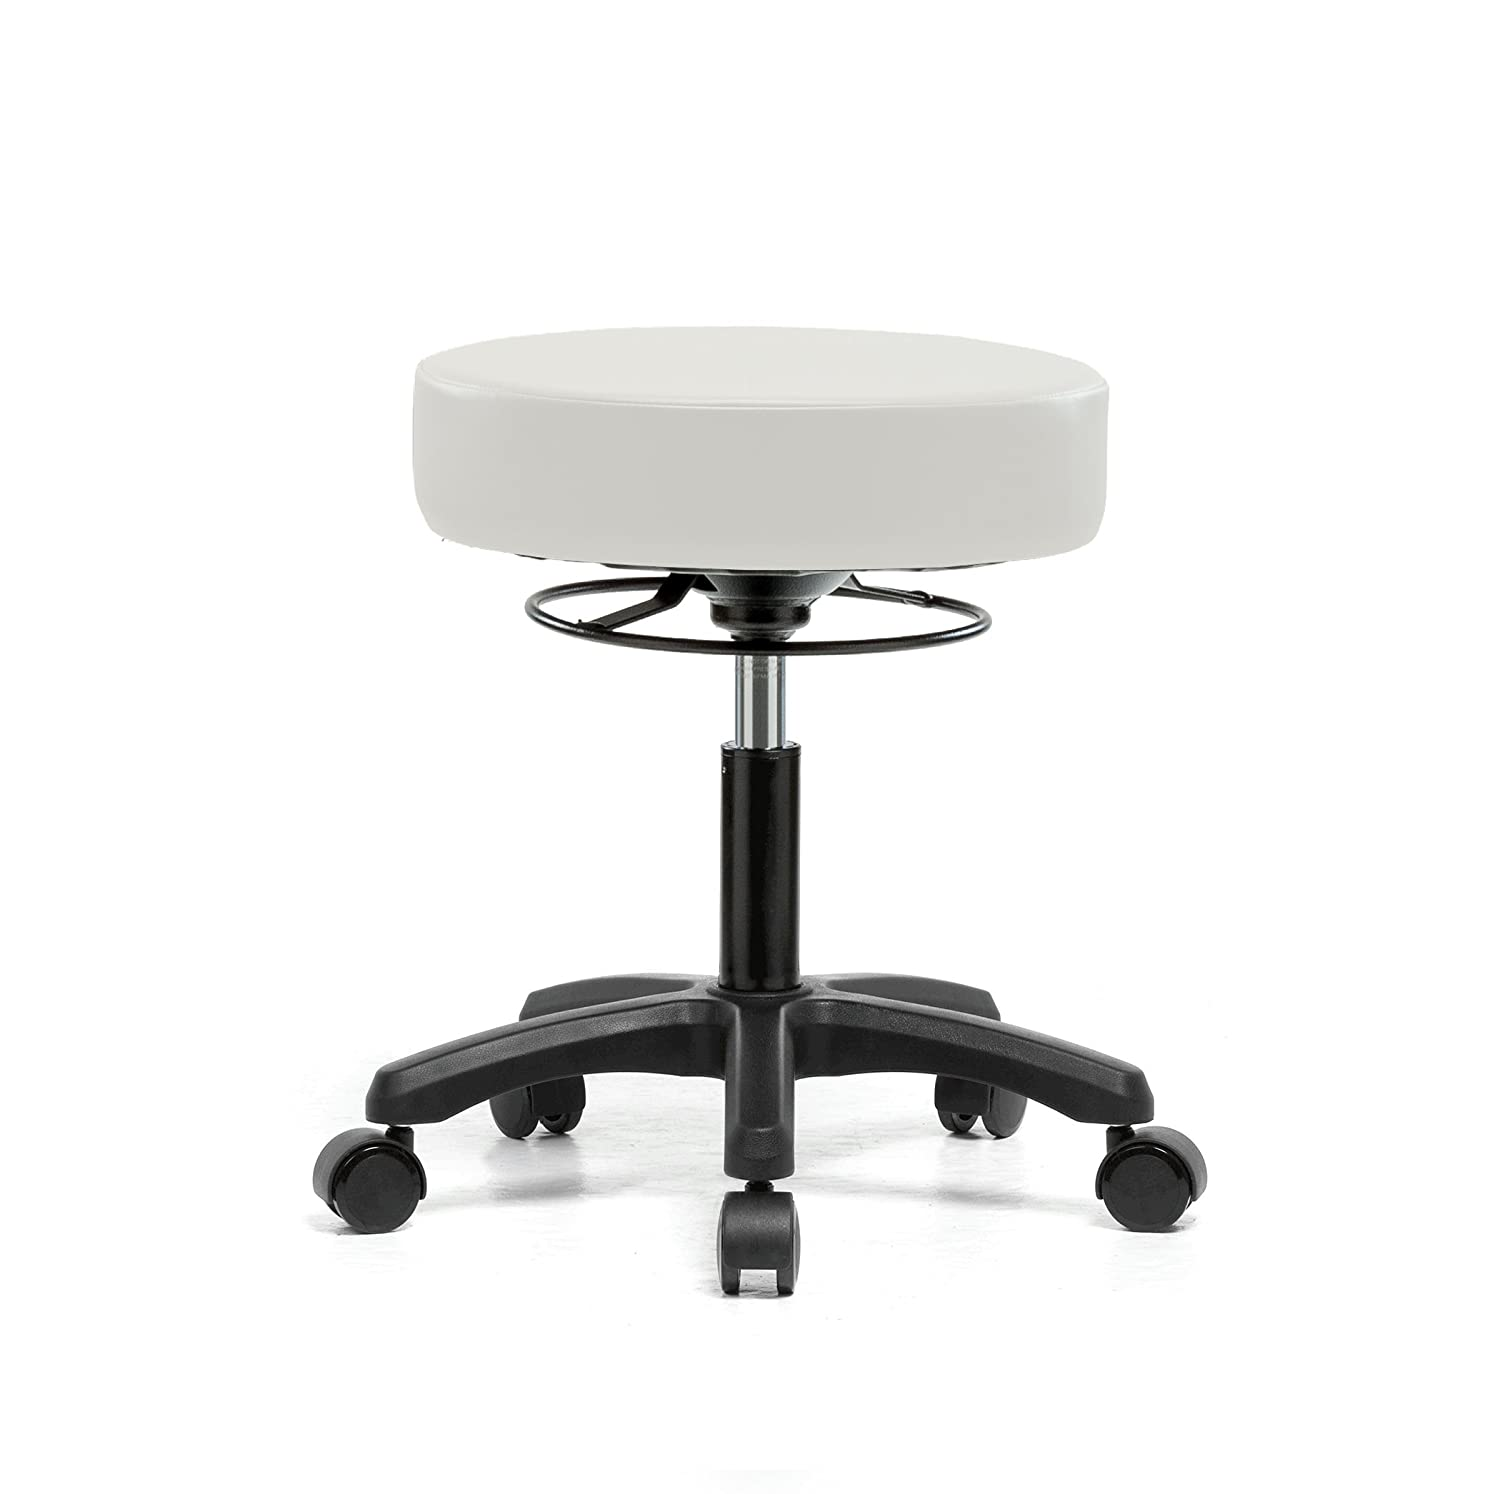 Perch Life Rolling Pneumatic Adjustable Stool For Lab Medical Office Spa Salon Kitchen Garage 18 - 23 (Soft Floor Casters/Adobe White Vinyl) Perch Chairs & Stools